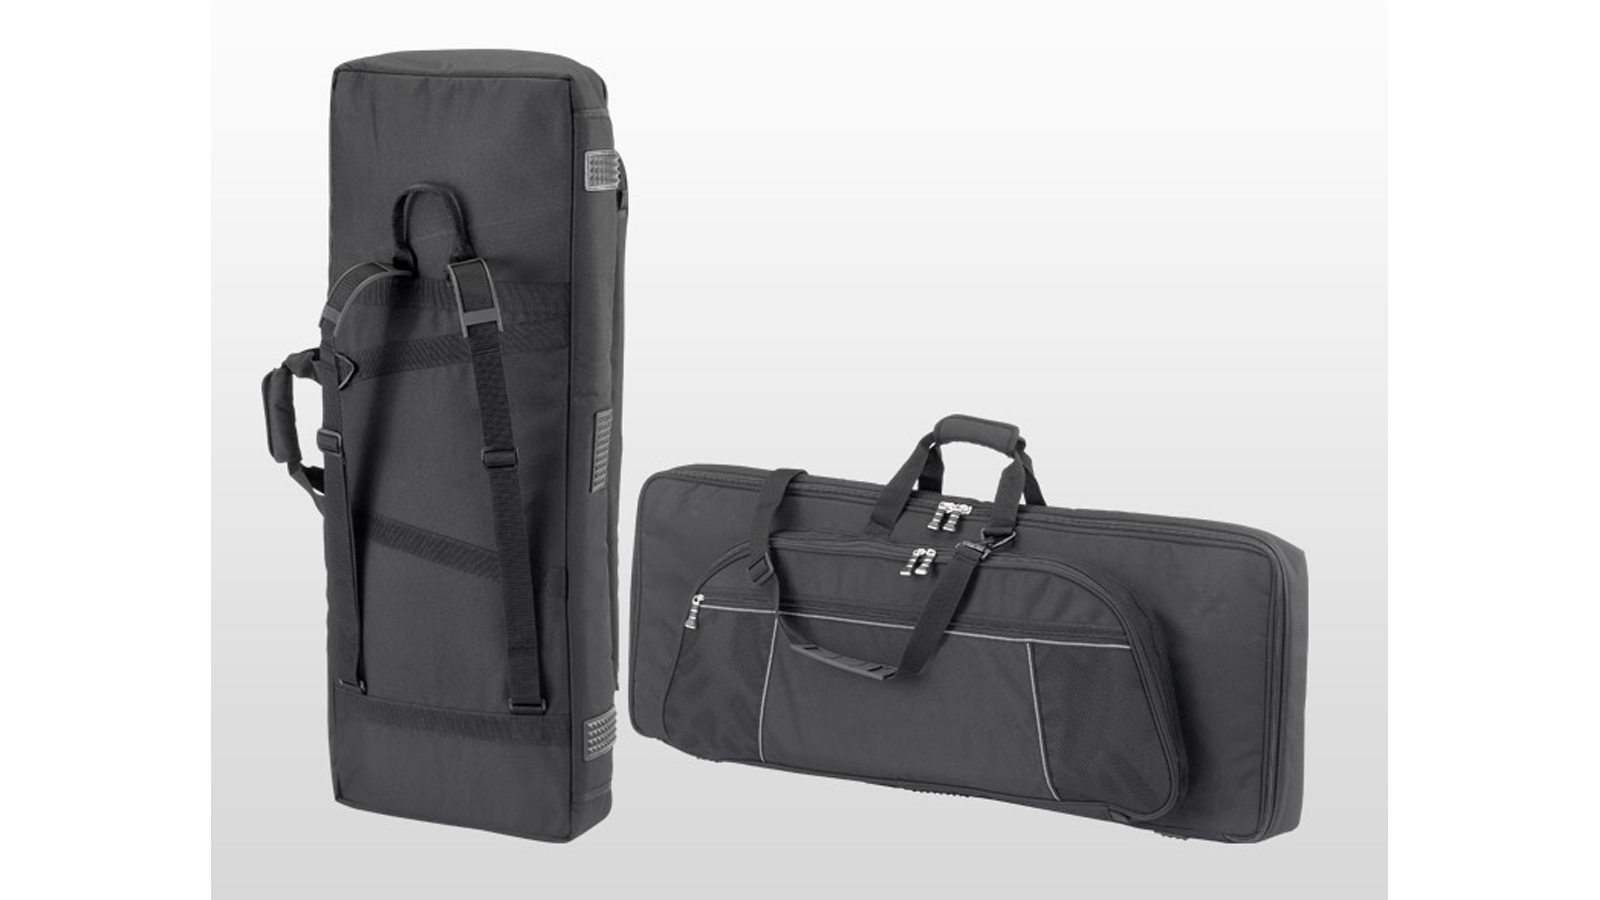 Soundwear Keyboard Bag Protector 133 x 33 x 16 cm